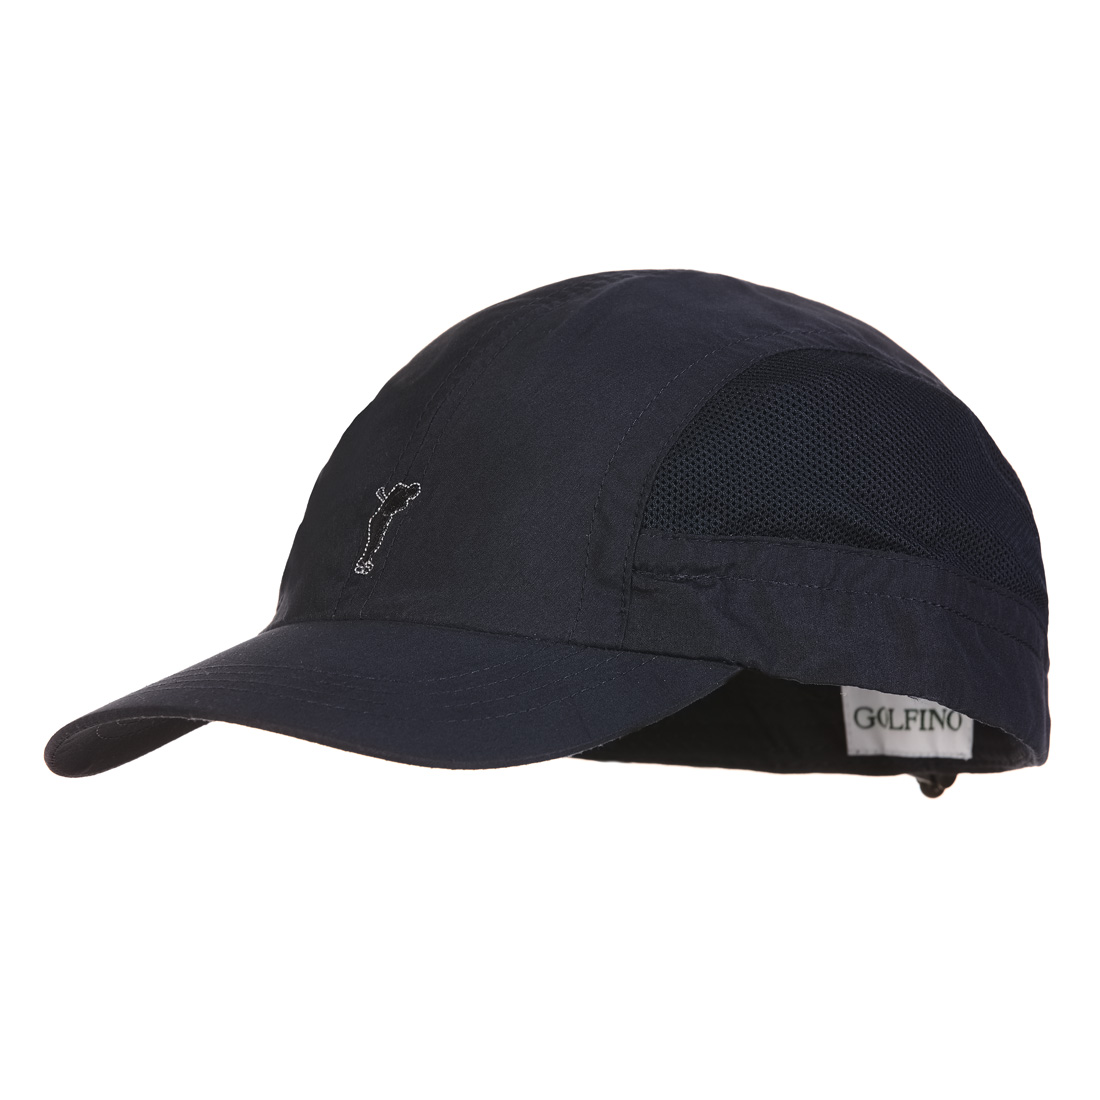 c5432561758 GOLFINO Men s microfibre golf cap with large mesh inserts shop online